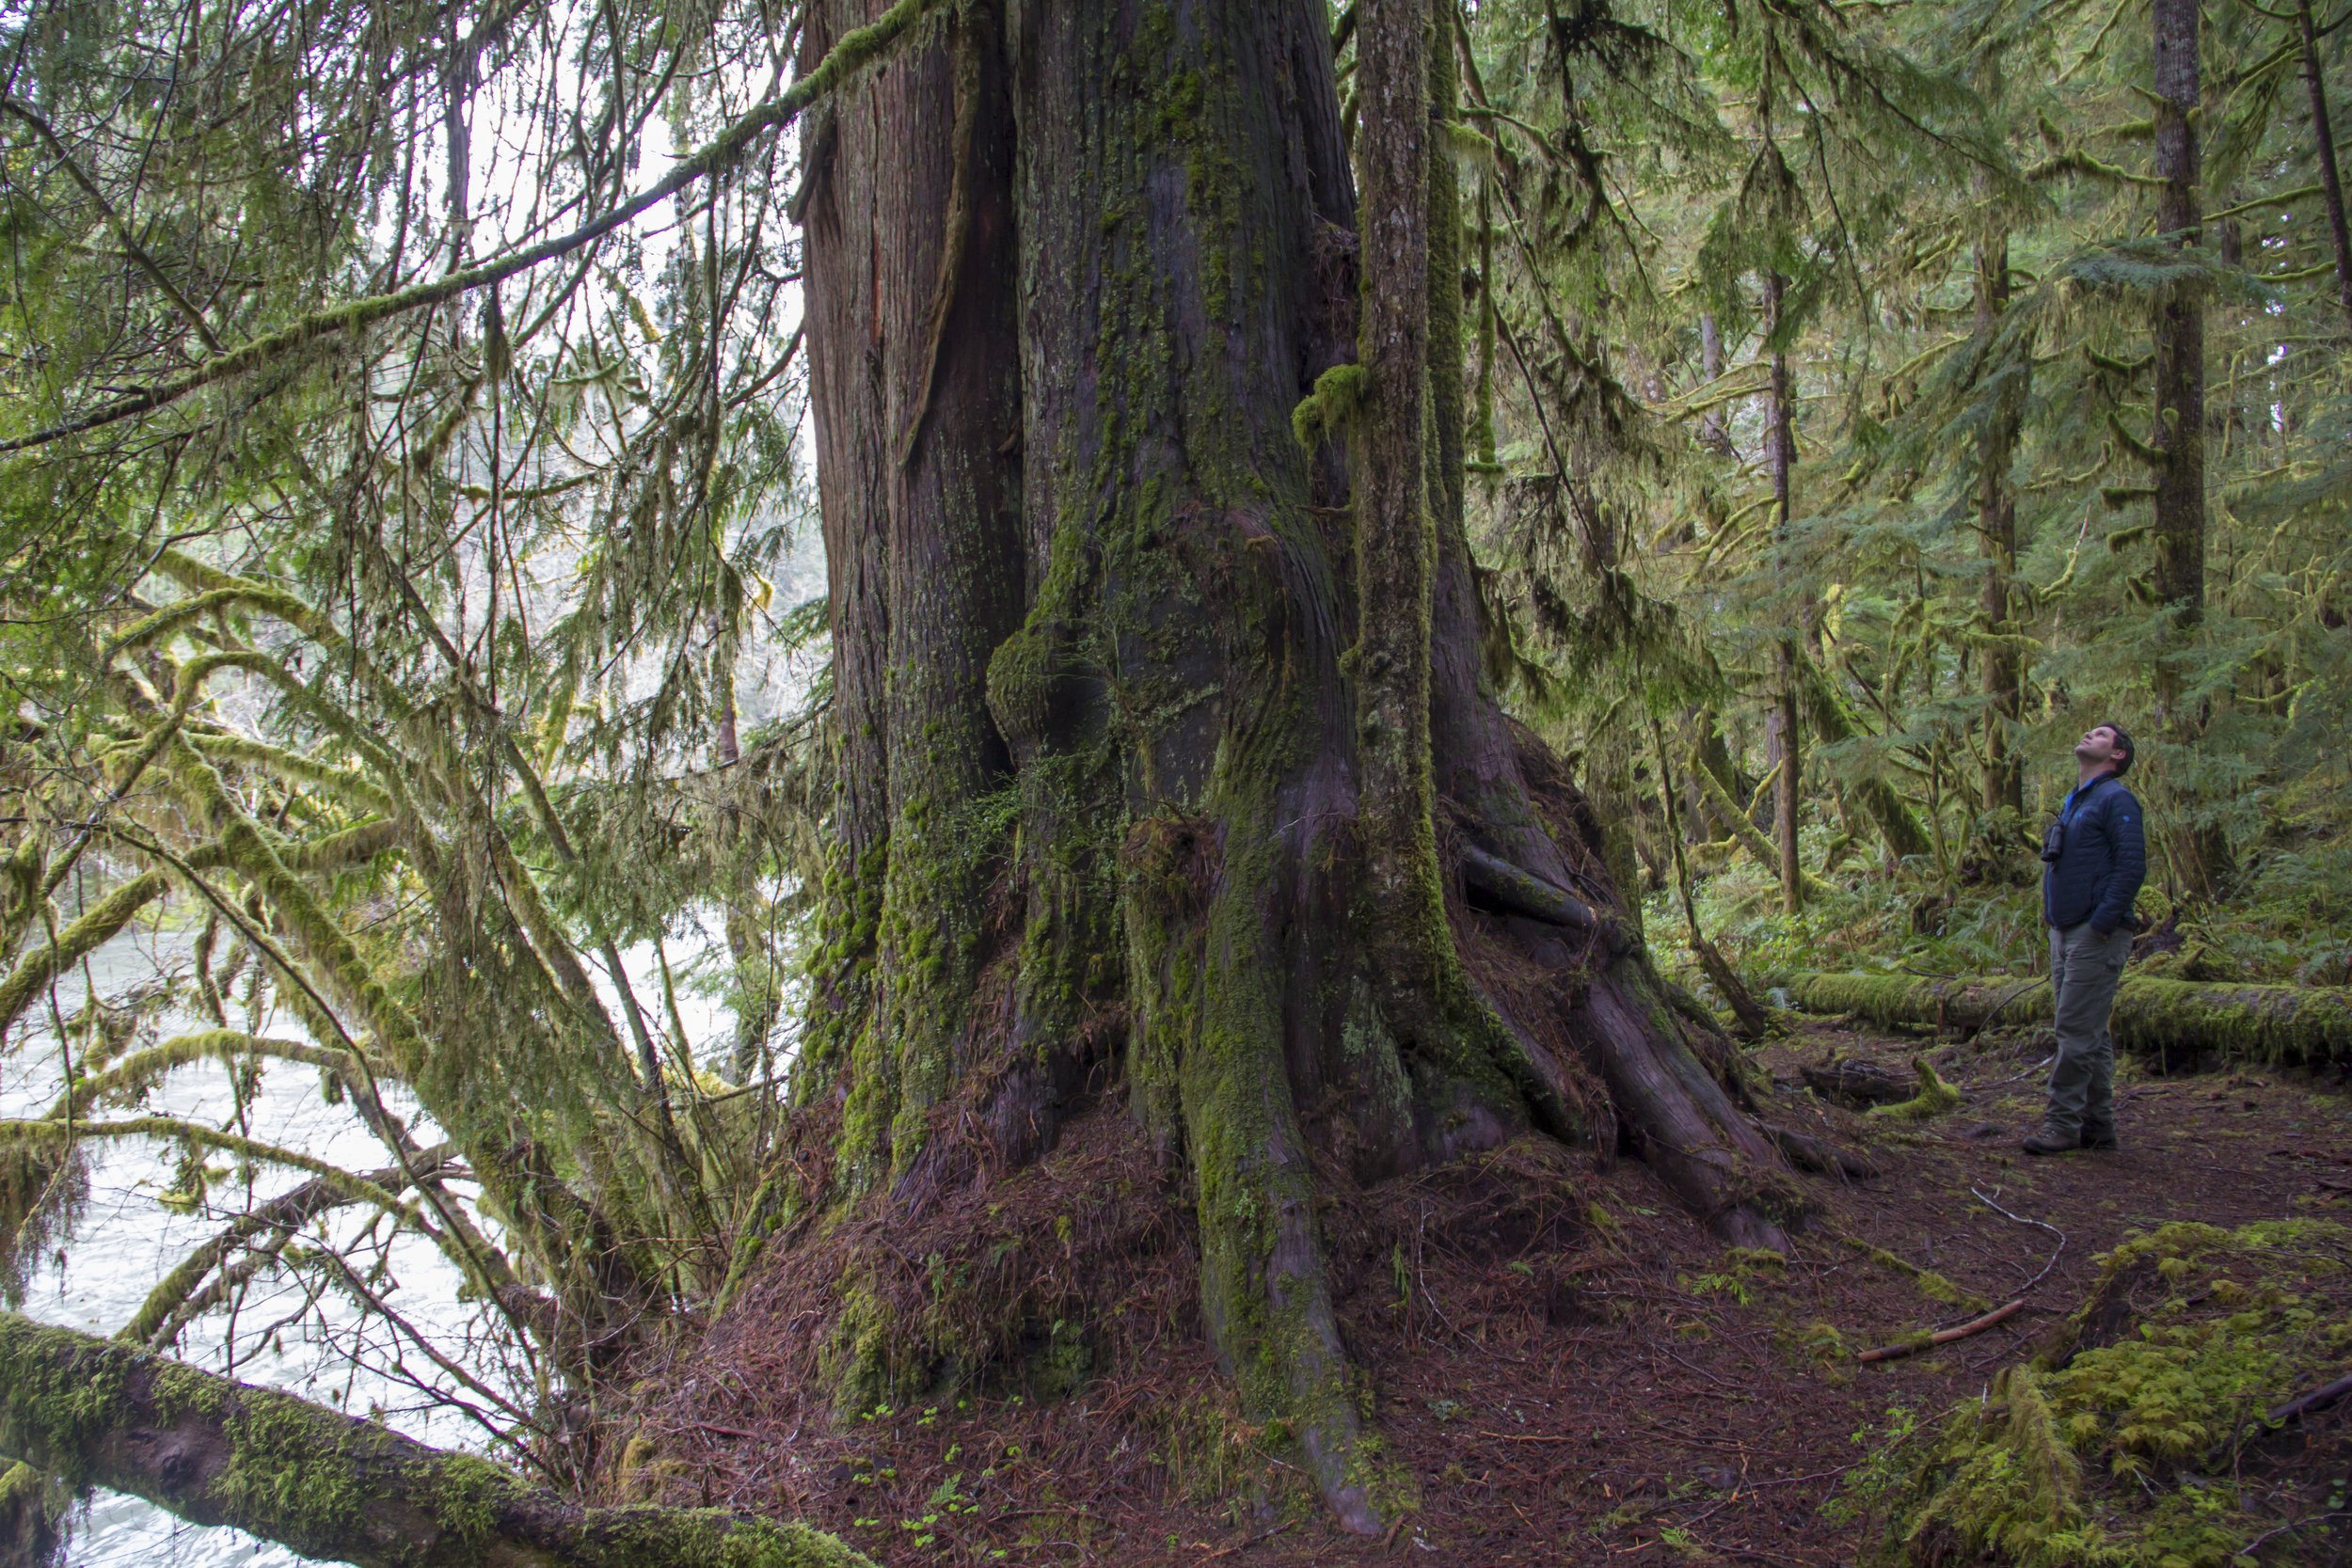 Kyle Smith looks up at old growth along the Hoh River. Photo by Joel Rogers.